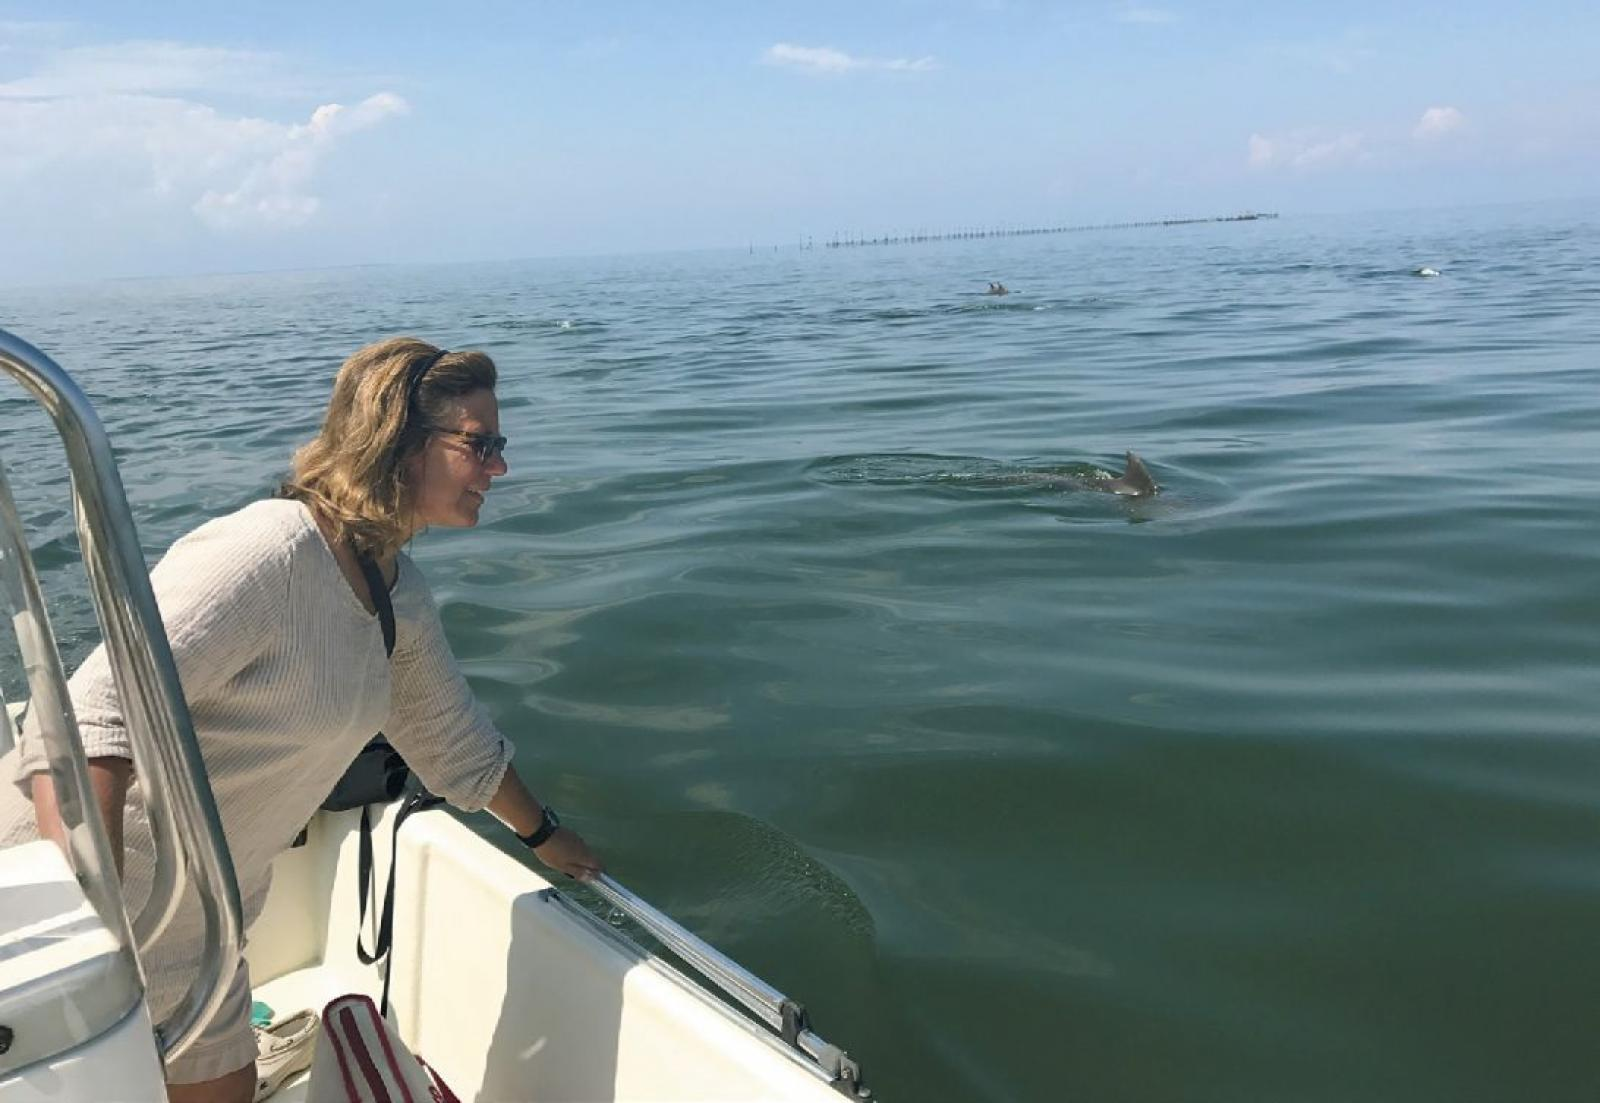 Professor Janet Mann looks off the side of Ahoya, the Potomac-Chesapeake Dolphin Project's boat, to observe a group of dolphins traveling through the Potomac.